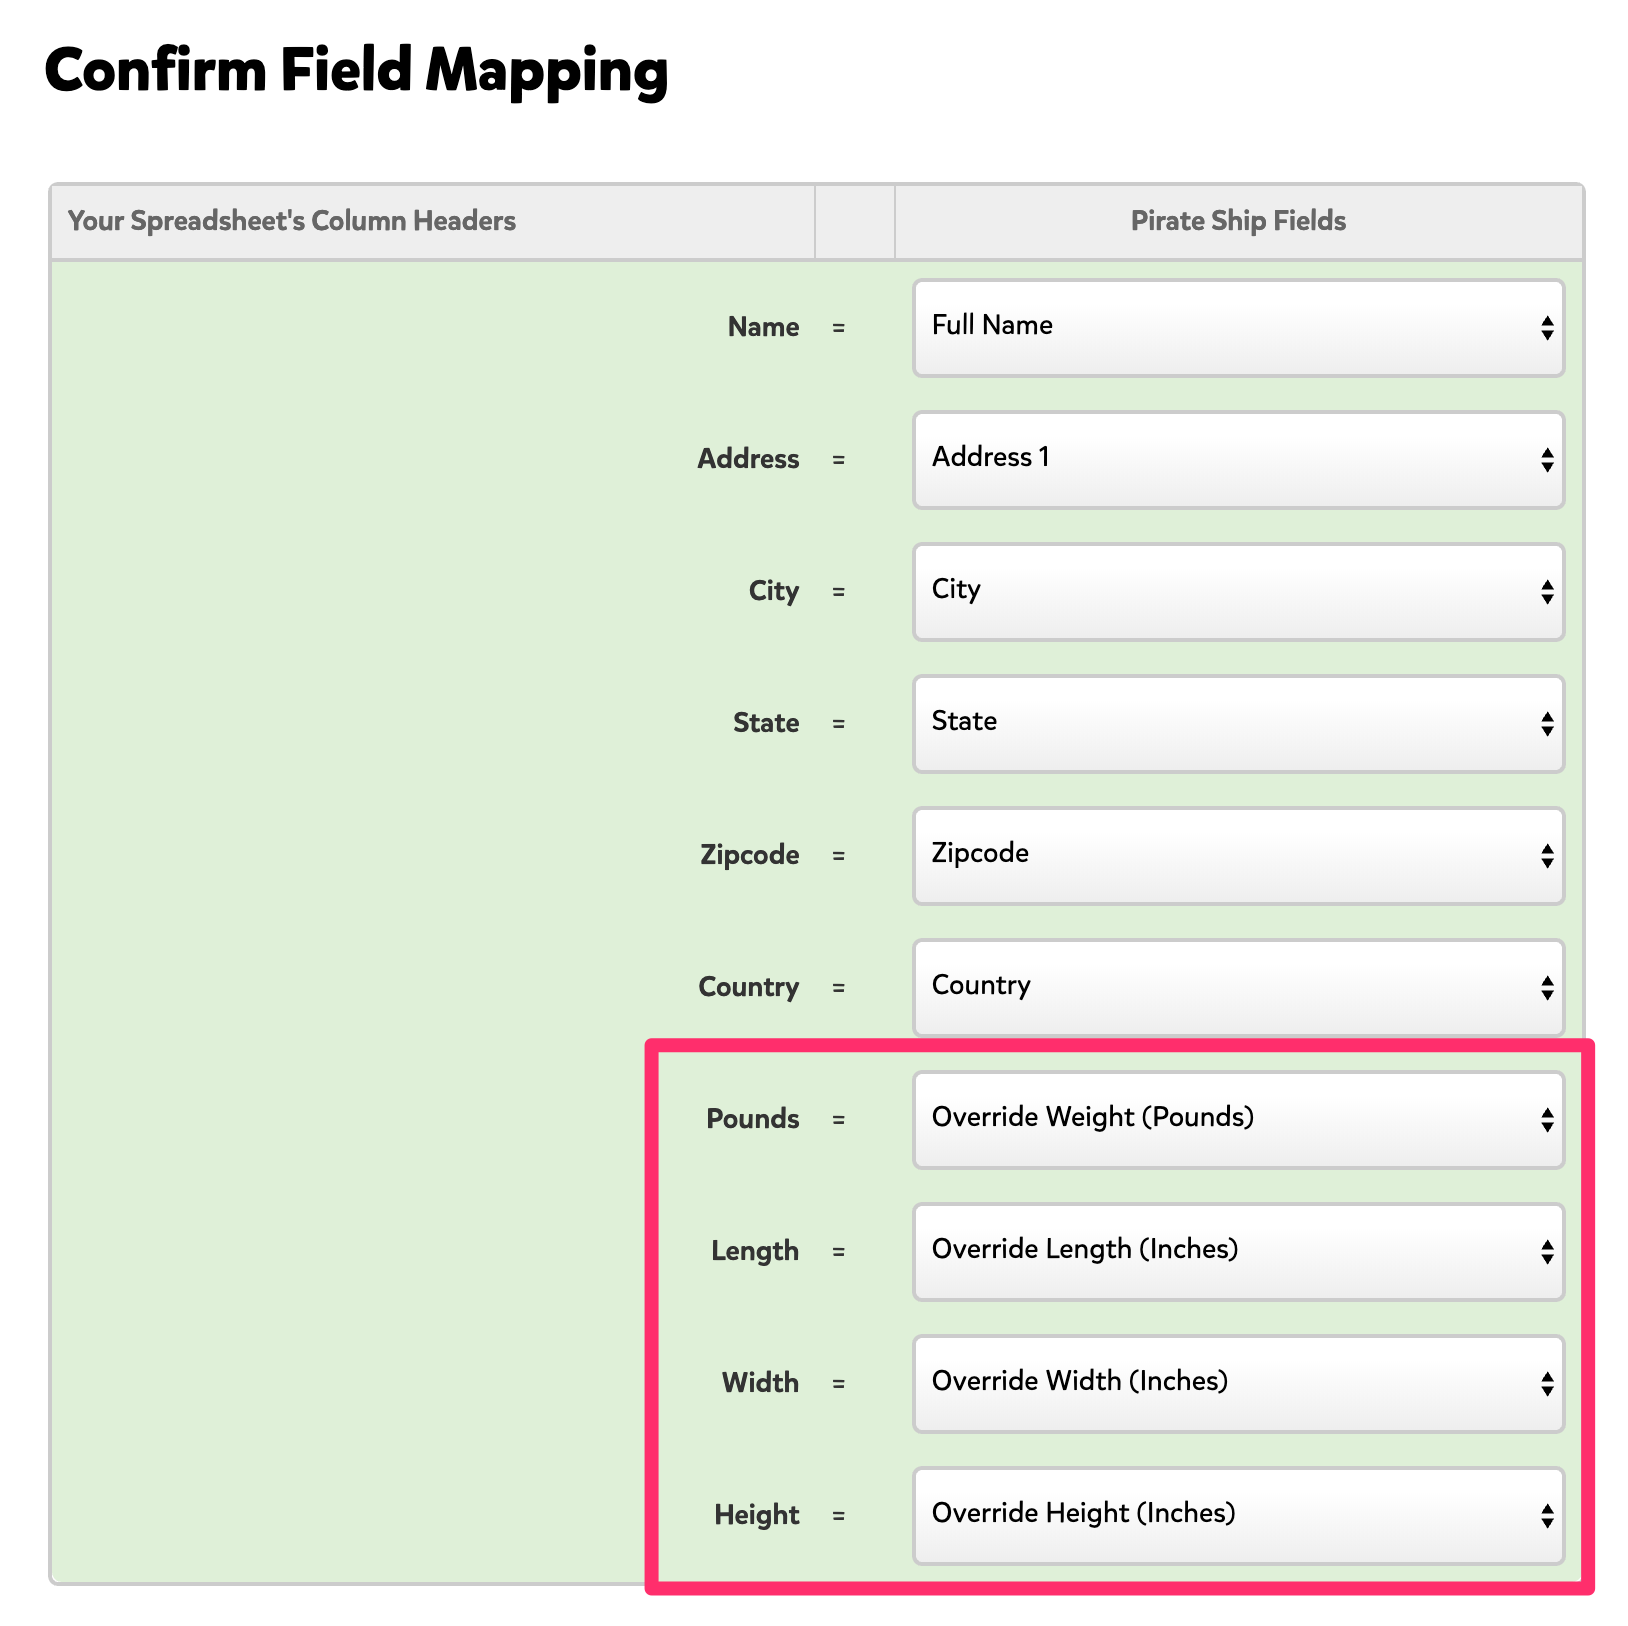 A screenshot showing the field mapping for the columns on your spreadsheet when you upload it to Pirate Ship. The mapping for 'pounds,' 'length,' 'width,' and 'height' are highlighted to bring attention to these fields.